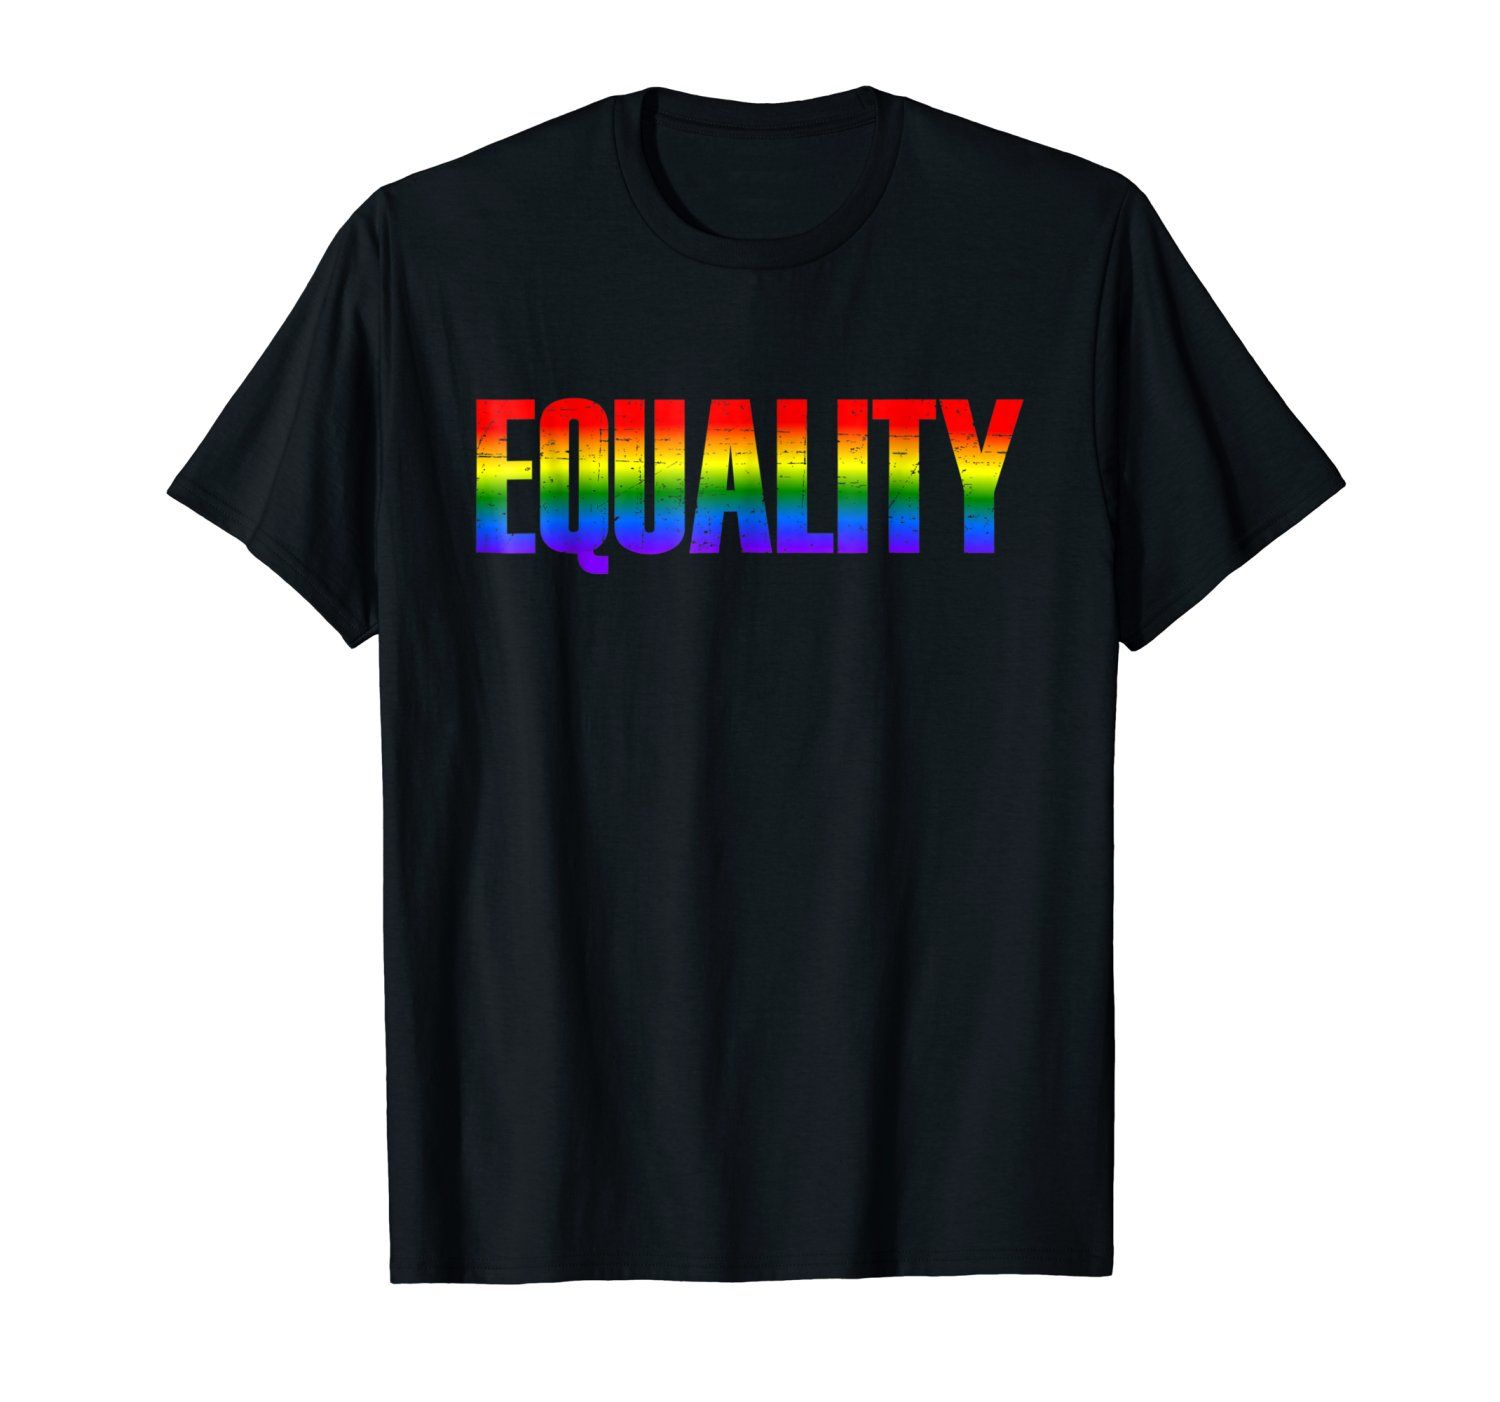 Equality Rainbow Vintage Flag Shirt Lesbian Gay Pride Parade Rights  Bisexual Transgender Transsexual gifts Tee with